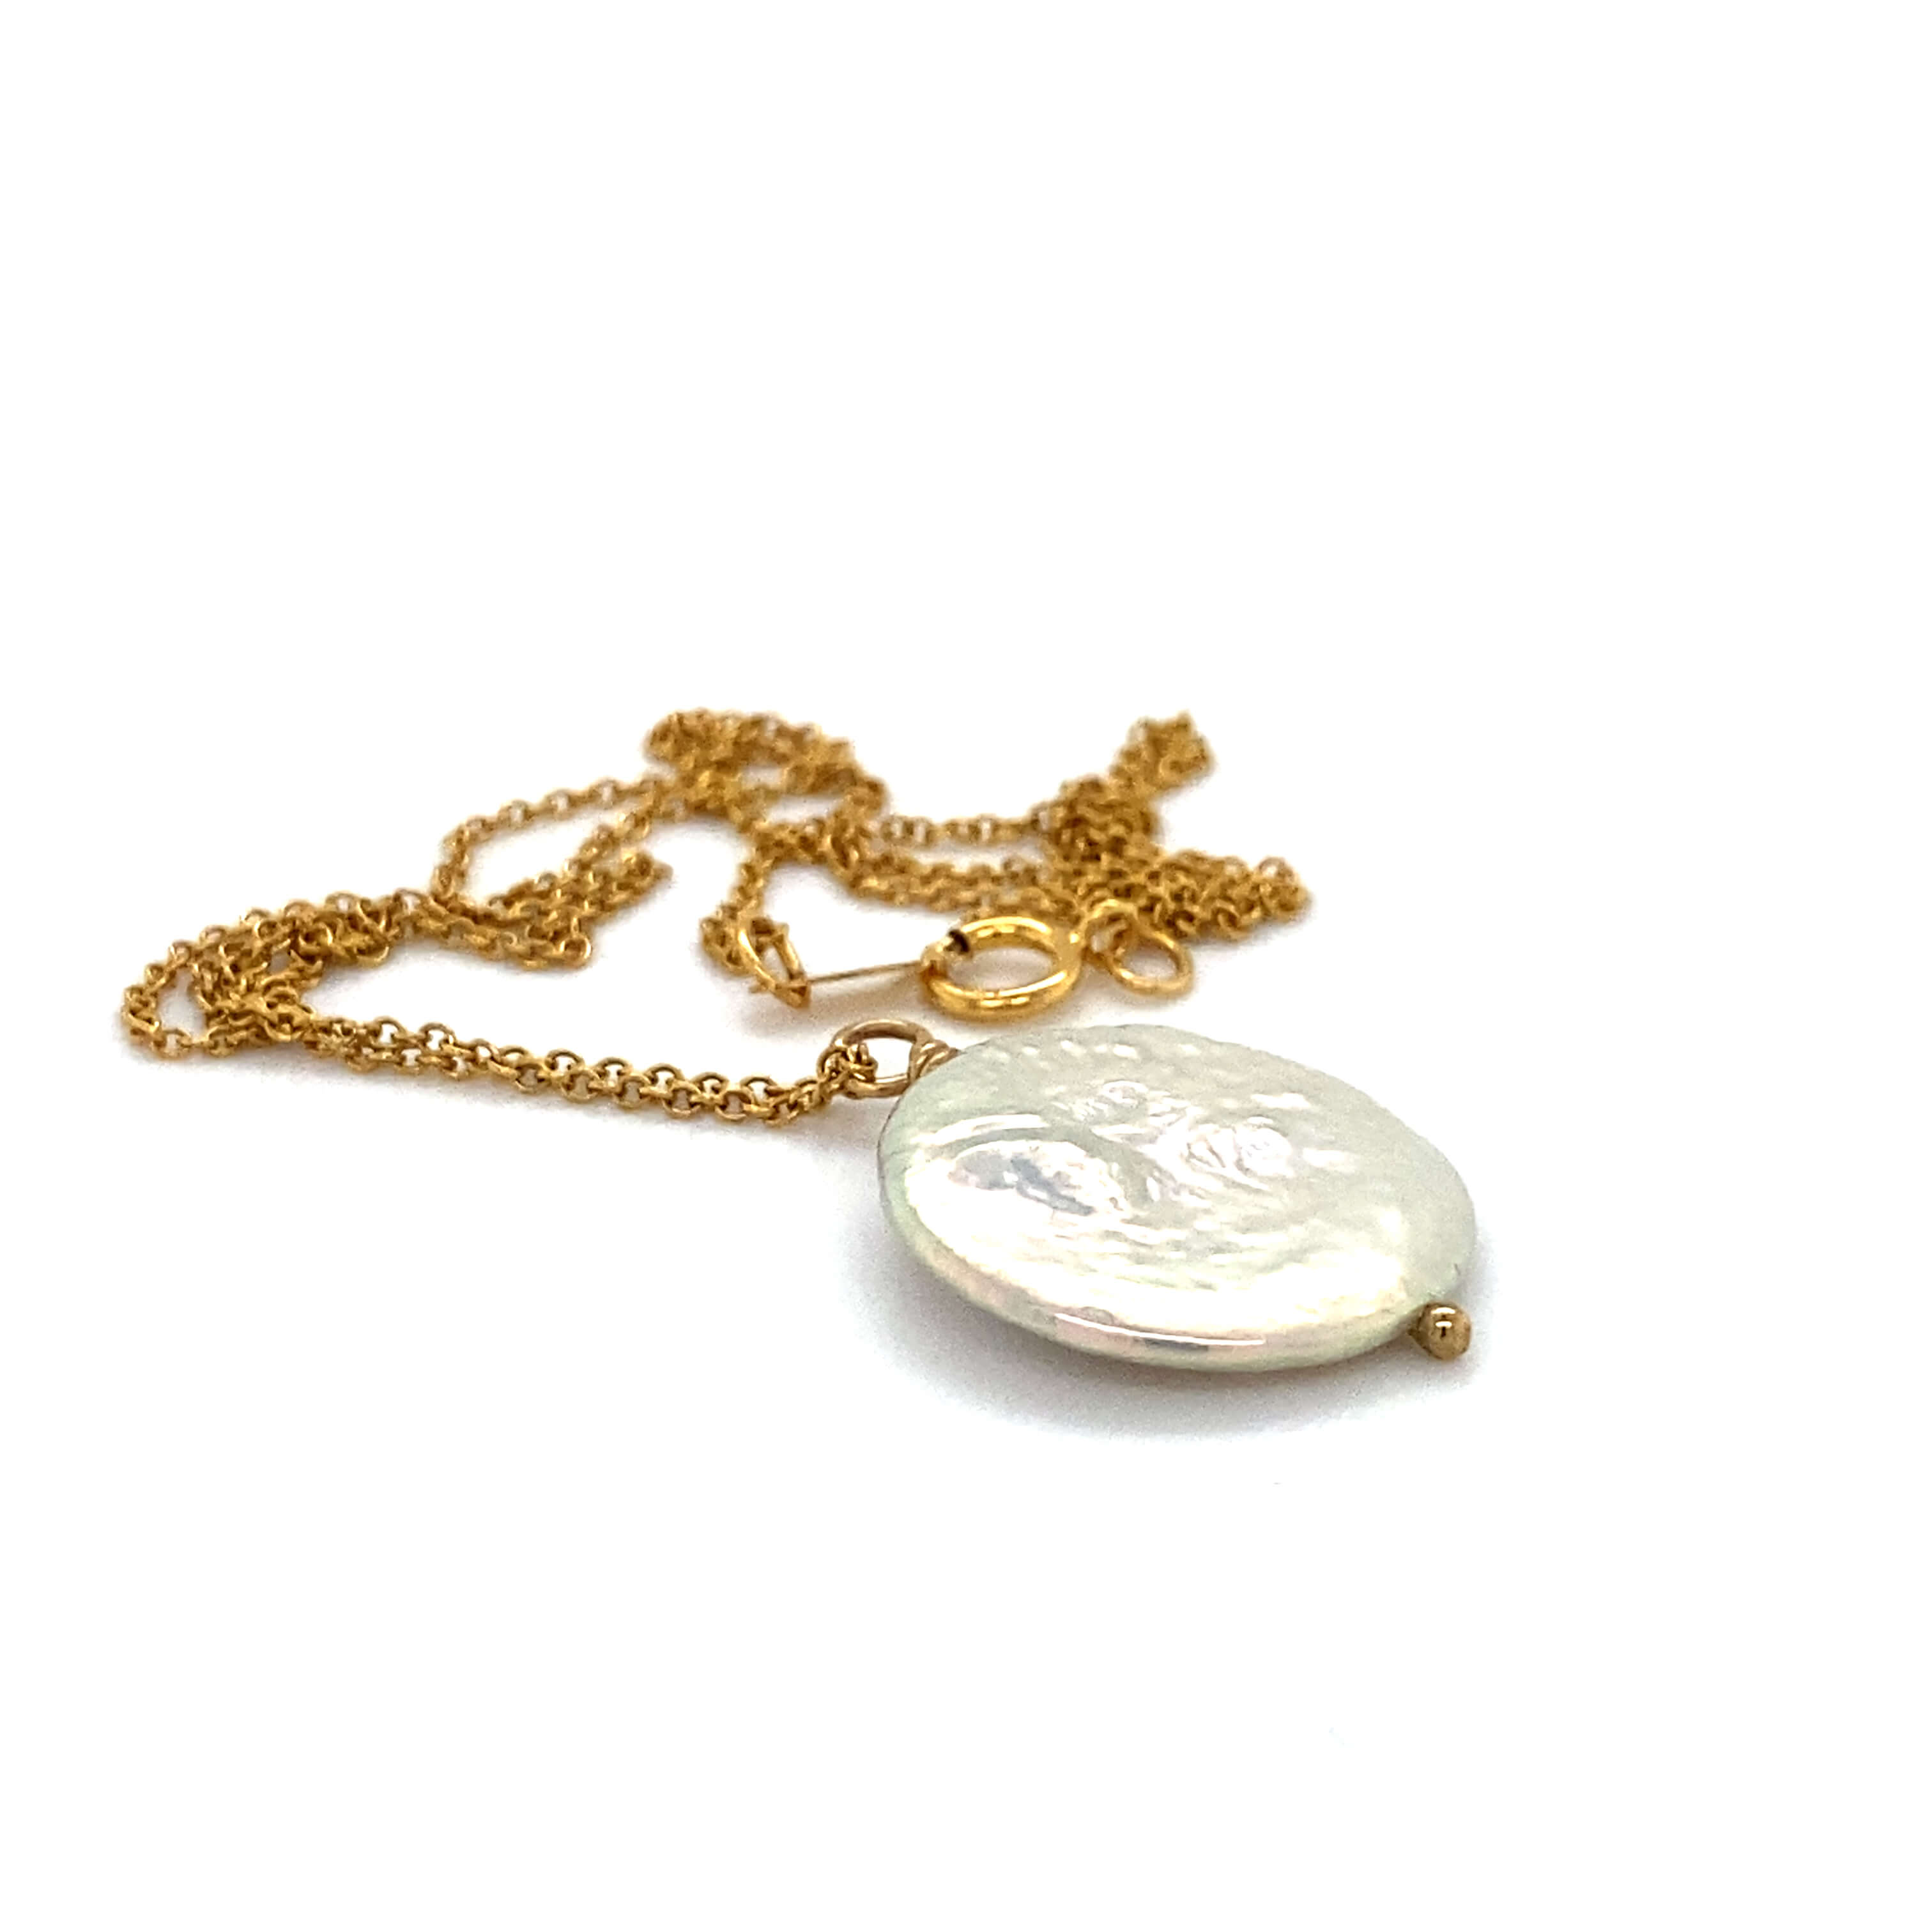 Aisha Necklace - Gold Fill with Pearl